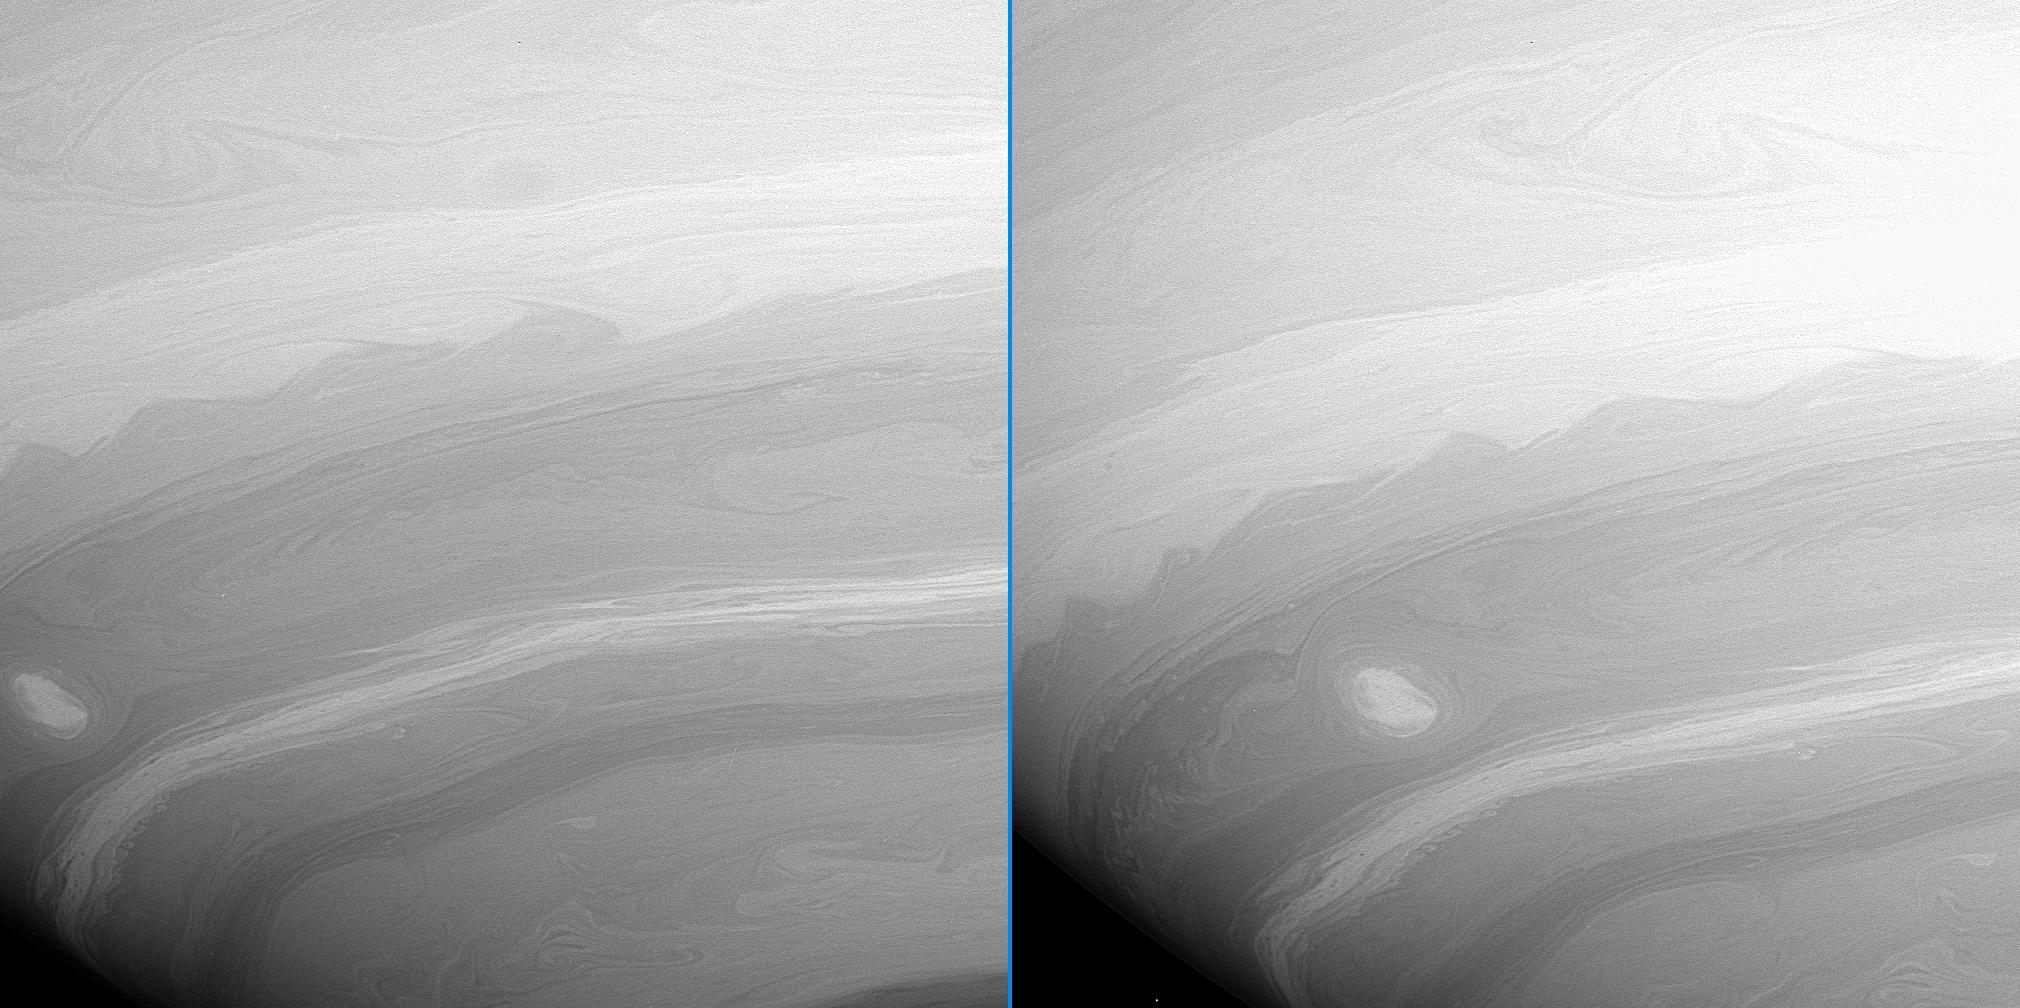 two images of Saturn showing vortices and turbulent wake's in the atmosphere